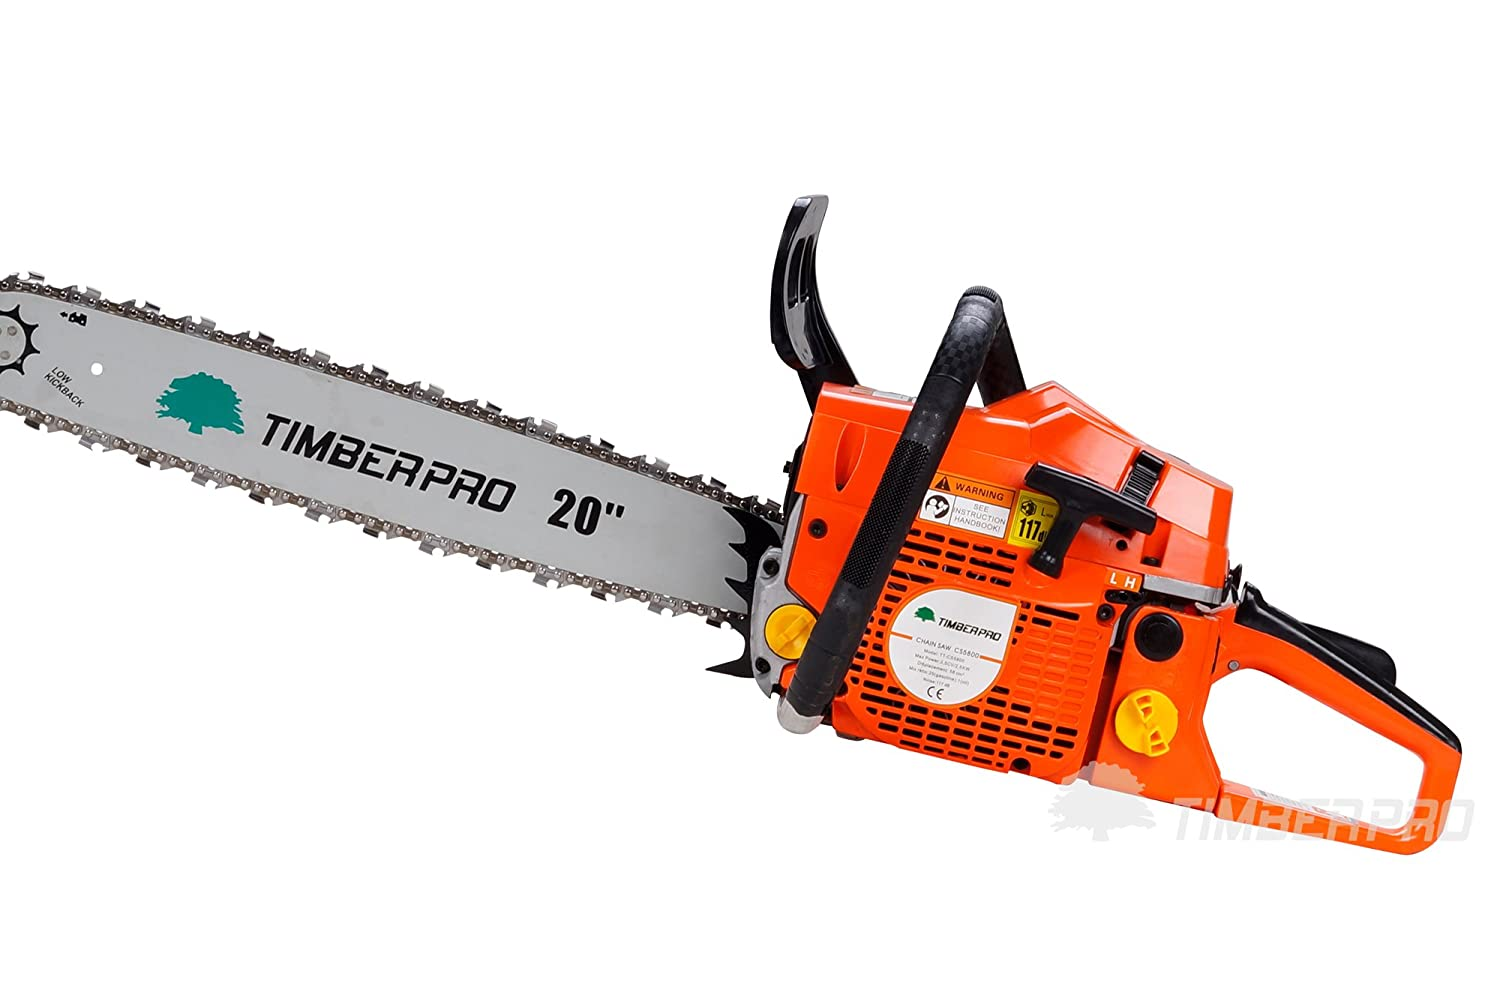 Timberpro 58cc 20 Petrol Chainsaw With 2 Chains Carry Bag And Husqvarna 325 Engine Diagram Accessories Diy Tools